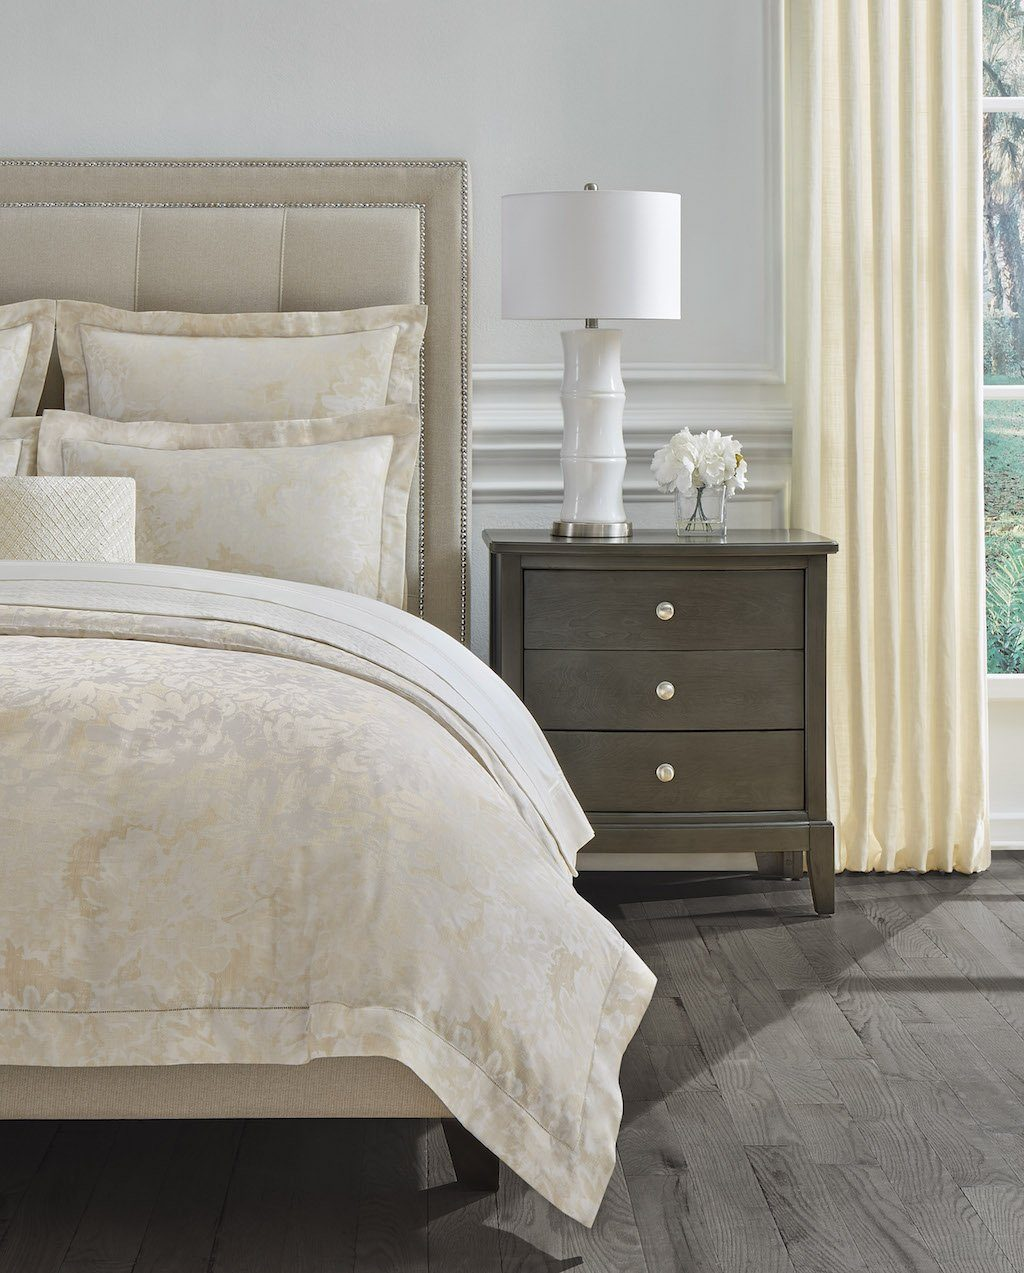 Fig Linens - Sferra Bedding - Petalo Gold Duvet and Shams